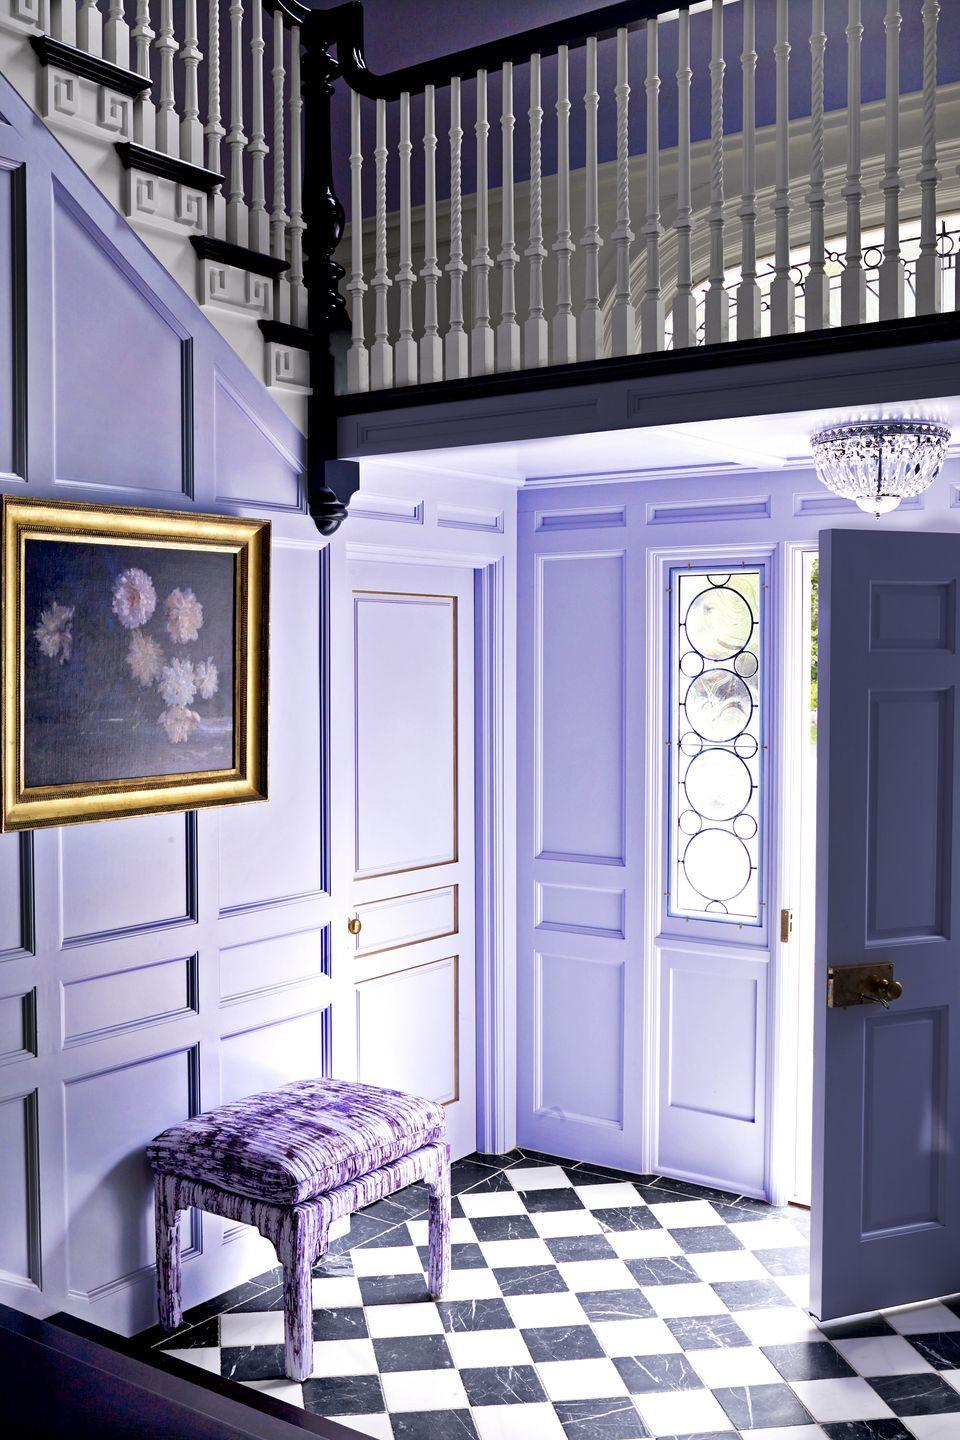 """<p>""""People underestimate the power of <a href=""""https://www.benjaminmoore.com/en-us/color-overview/find-your-color/color/2070-60/lavender-mist?color=2070-60"""" rel=""""nofollow noopener"""" target=""""_blank"""" data-ylk=""""slk:lavender"""" class=""""link rapid-noclick-resp"""">lavender</a>,"""" <a href=""""https://www.marymcgeeinteriors.com/"""" rel=""""nofollow noopener"""" target=""""_blank"""" data-ylk=""""slk:Mary McGee"""" class=""""link rapid-noclick-resp"""">Mary McGee</a> told <em><a href=""""http://www.housebeautiful.com/home-remodeling/interior-designers/interviews/a3415/mary-mcgee-interview/"""" rel=""""nofollow noopener"""" target=""""_blank"""" data-ylk=""""slk:House Beautiful"""" class=""""link rapid-noclick-resp"""">House Beautiful</a></em>. Pale orchid livens up this entryway's walls while keeping rooms light and airy.</p><p><a class=""""link rapid-noclick-resp"""" href=""""https://www.benjaminmoore.com/en-us/color-overview/find-your-color/color/2070-60/lavender-mist?color=2070-60"""" rel=""""nofollow noopener"""" target=""""_blank"""" data-ylk=""""slk:SHOP NOW"""">SHOP NOW</a></p>"""